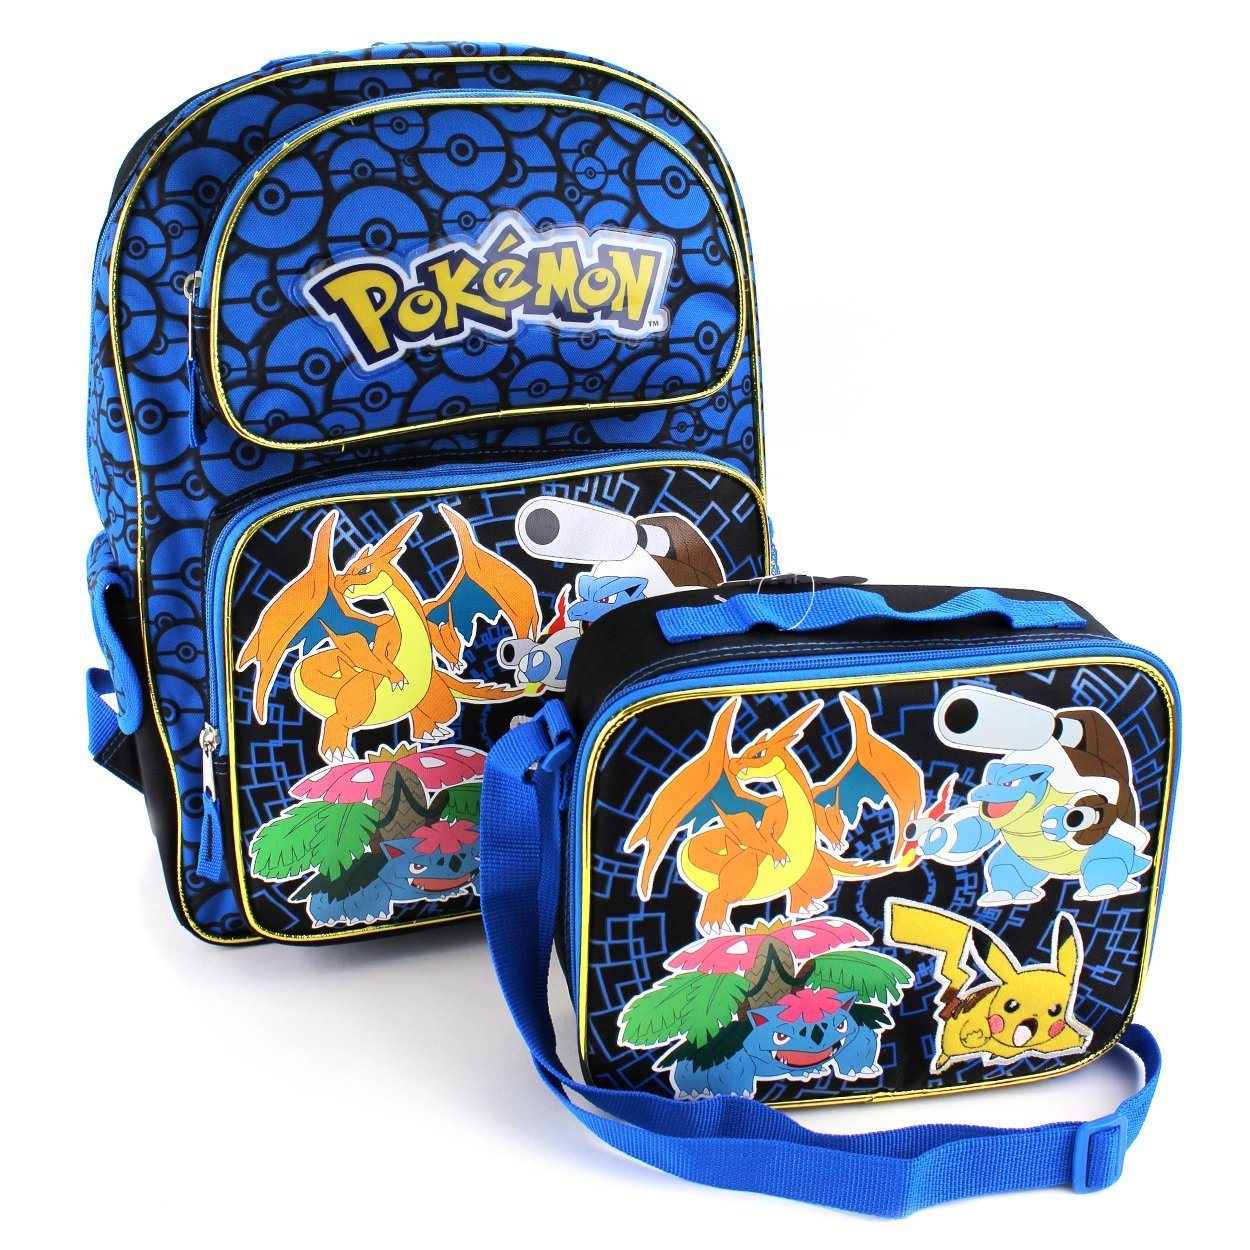 0aa3eaa342d5 Pokemon 16 Inch Backpack and Lunch Box Set (Pokemon Blue)  Amazon.co.uk   Toys   Games